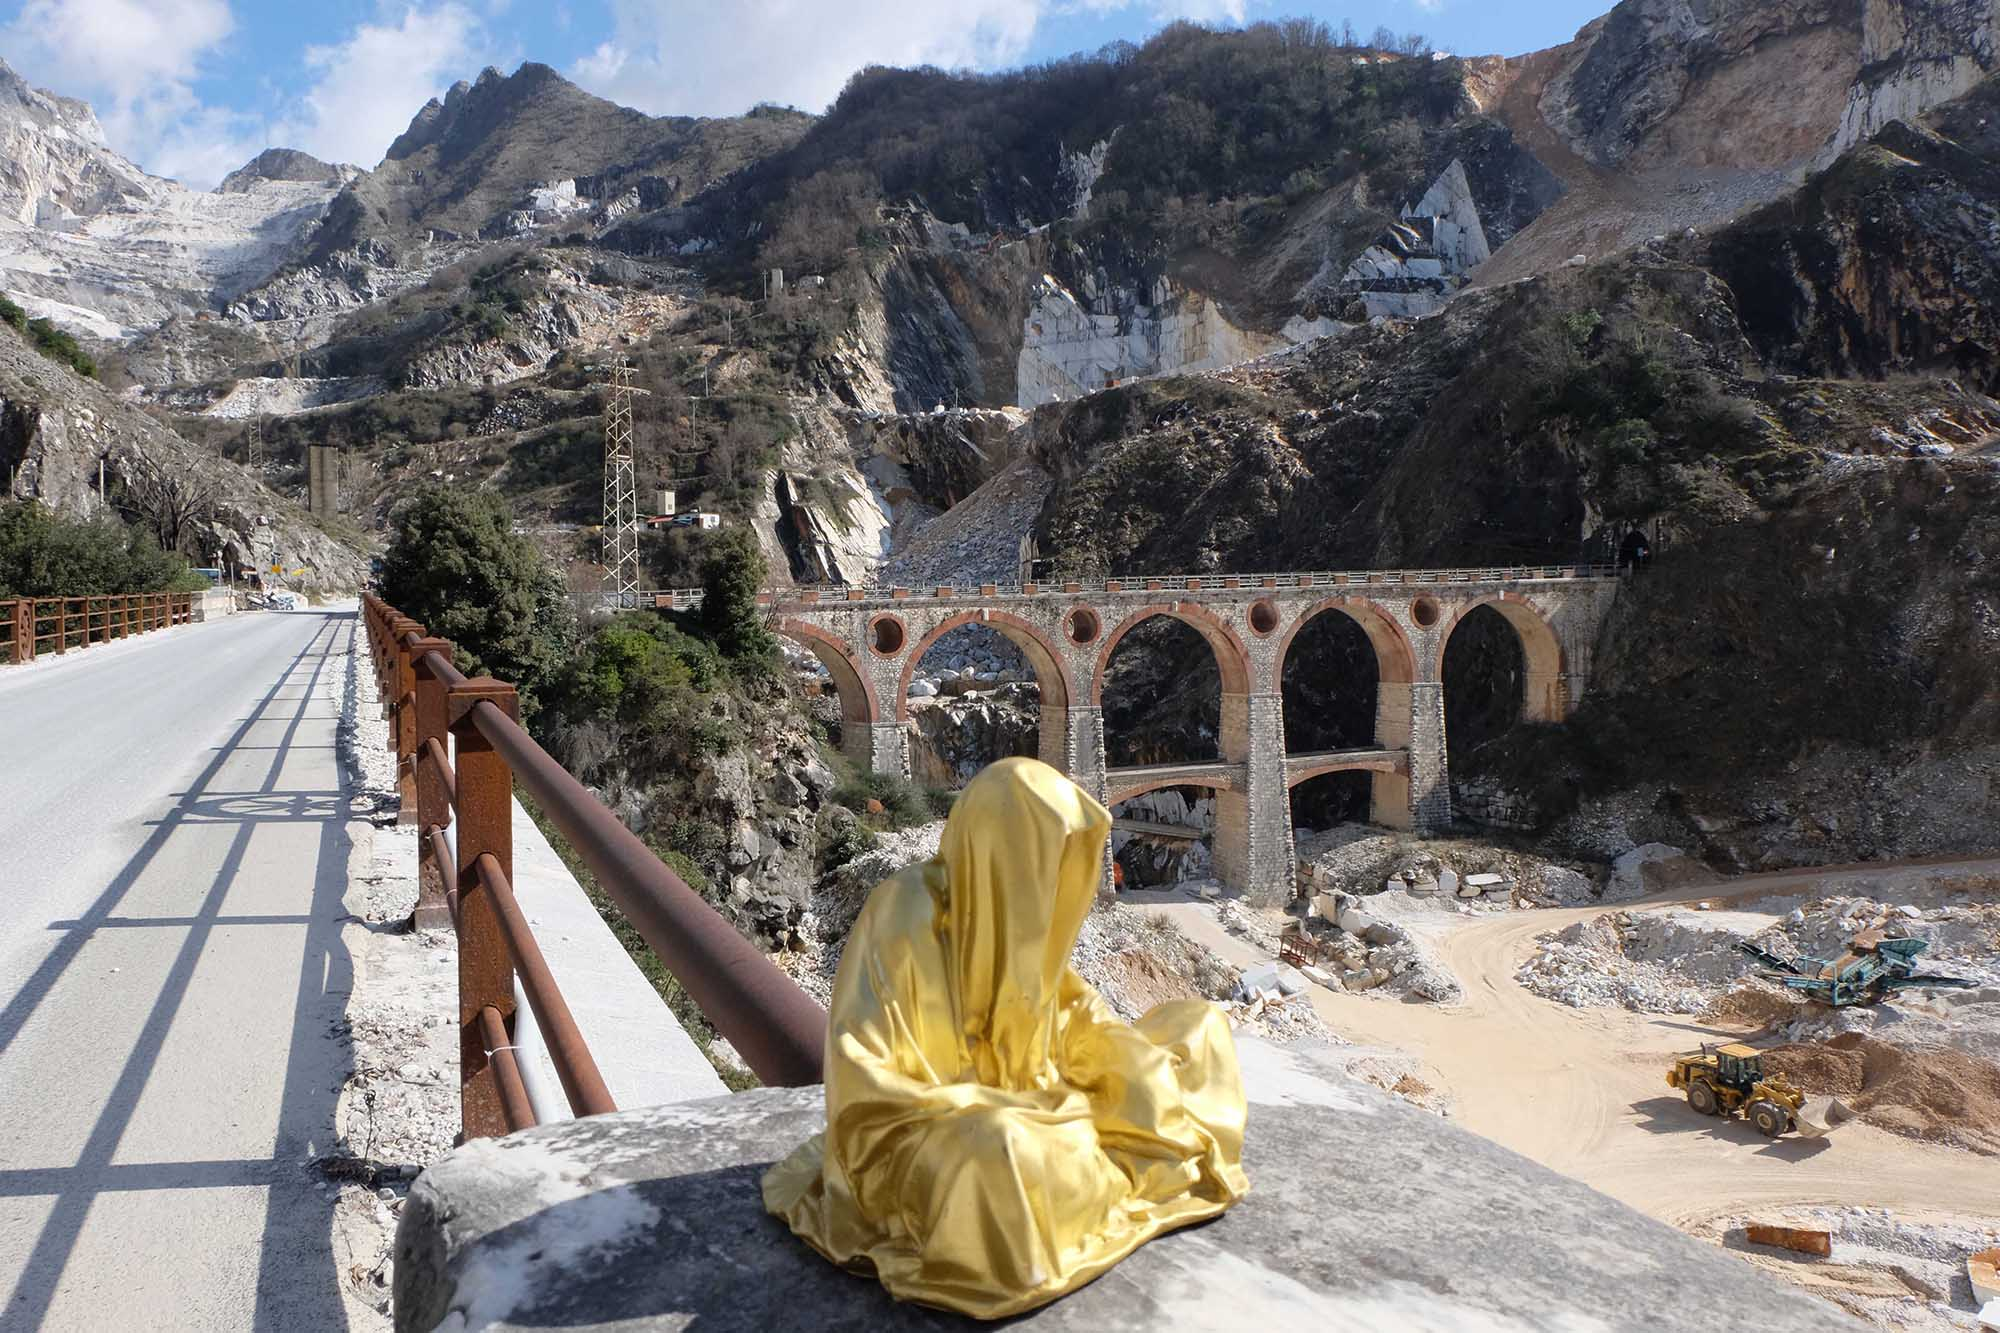 guardians of time manfred kili kielnhofer modern sculpture contemporary fine art design arts statue faceless religion stone marble carrara 0799